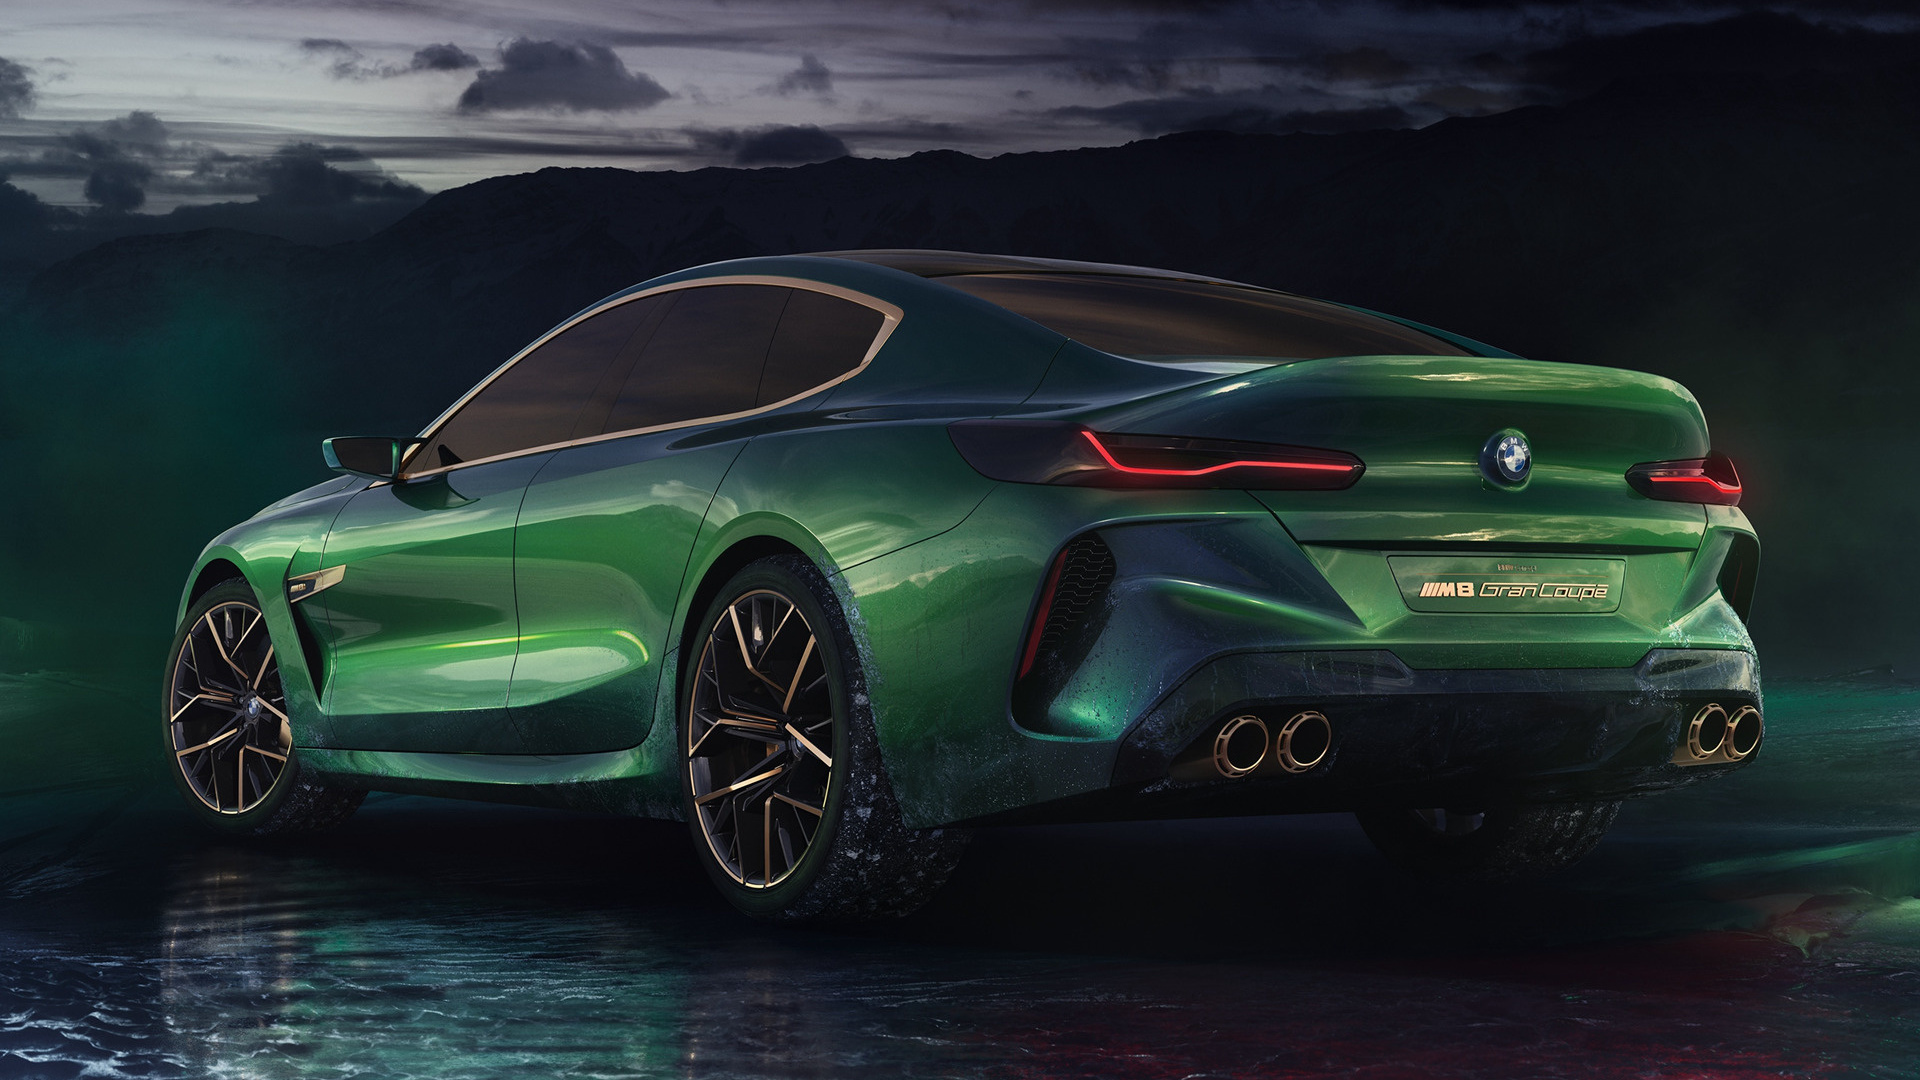 BMW Concept M8 Gran Coupe (2018) Wallpapers and HD Images - Car Pixel